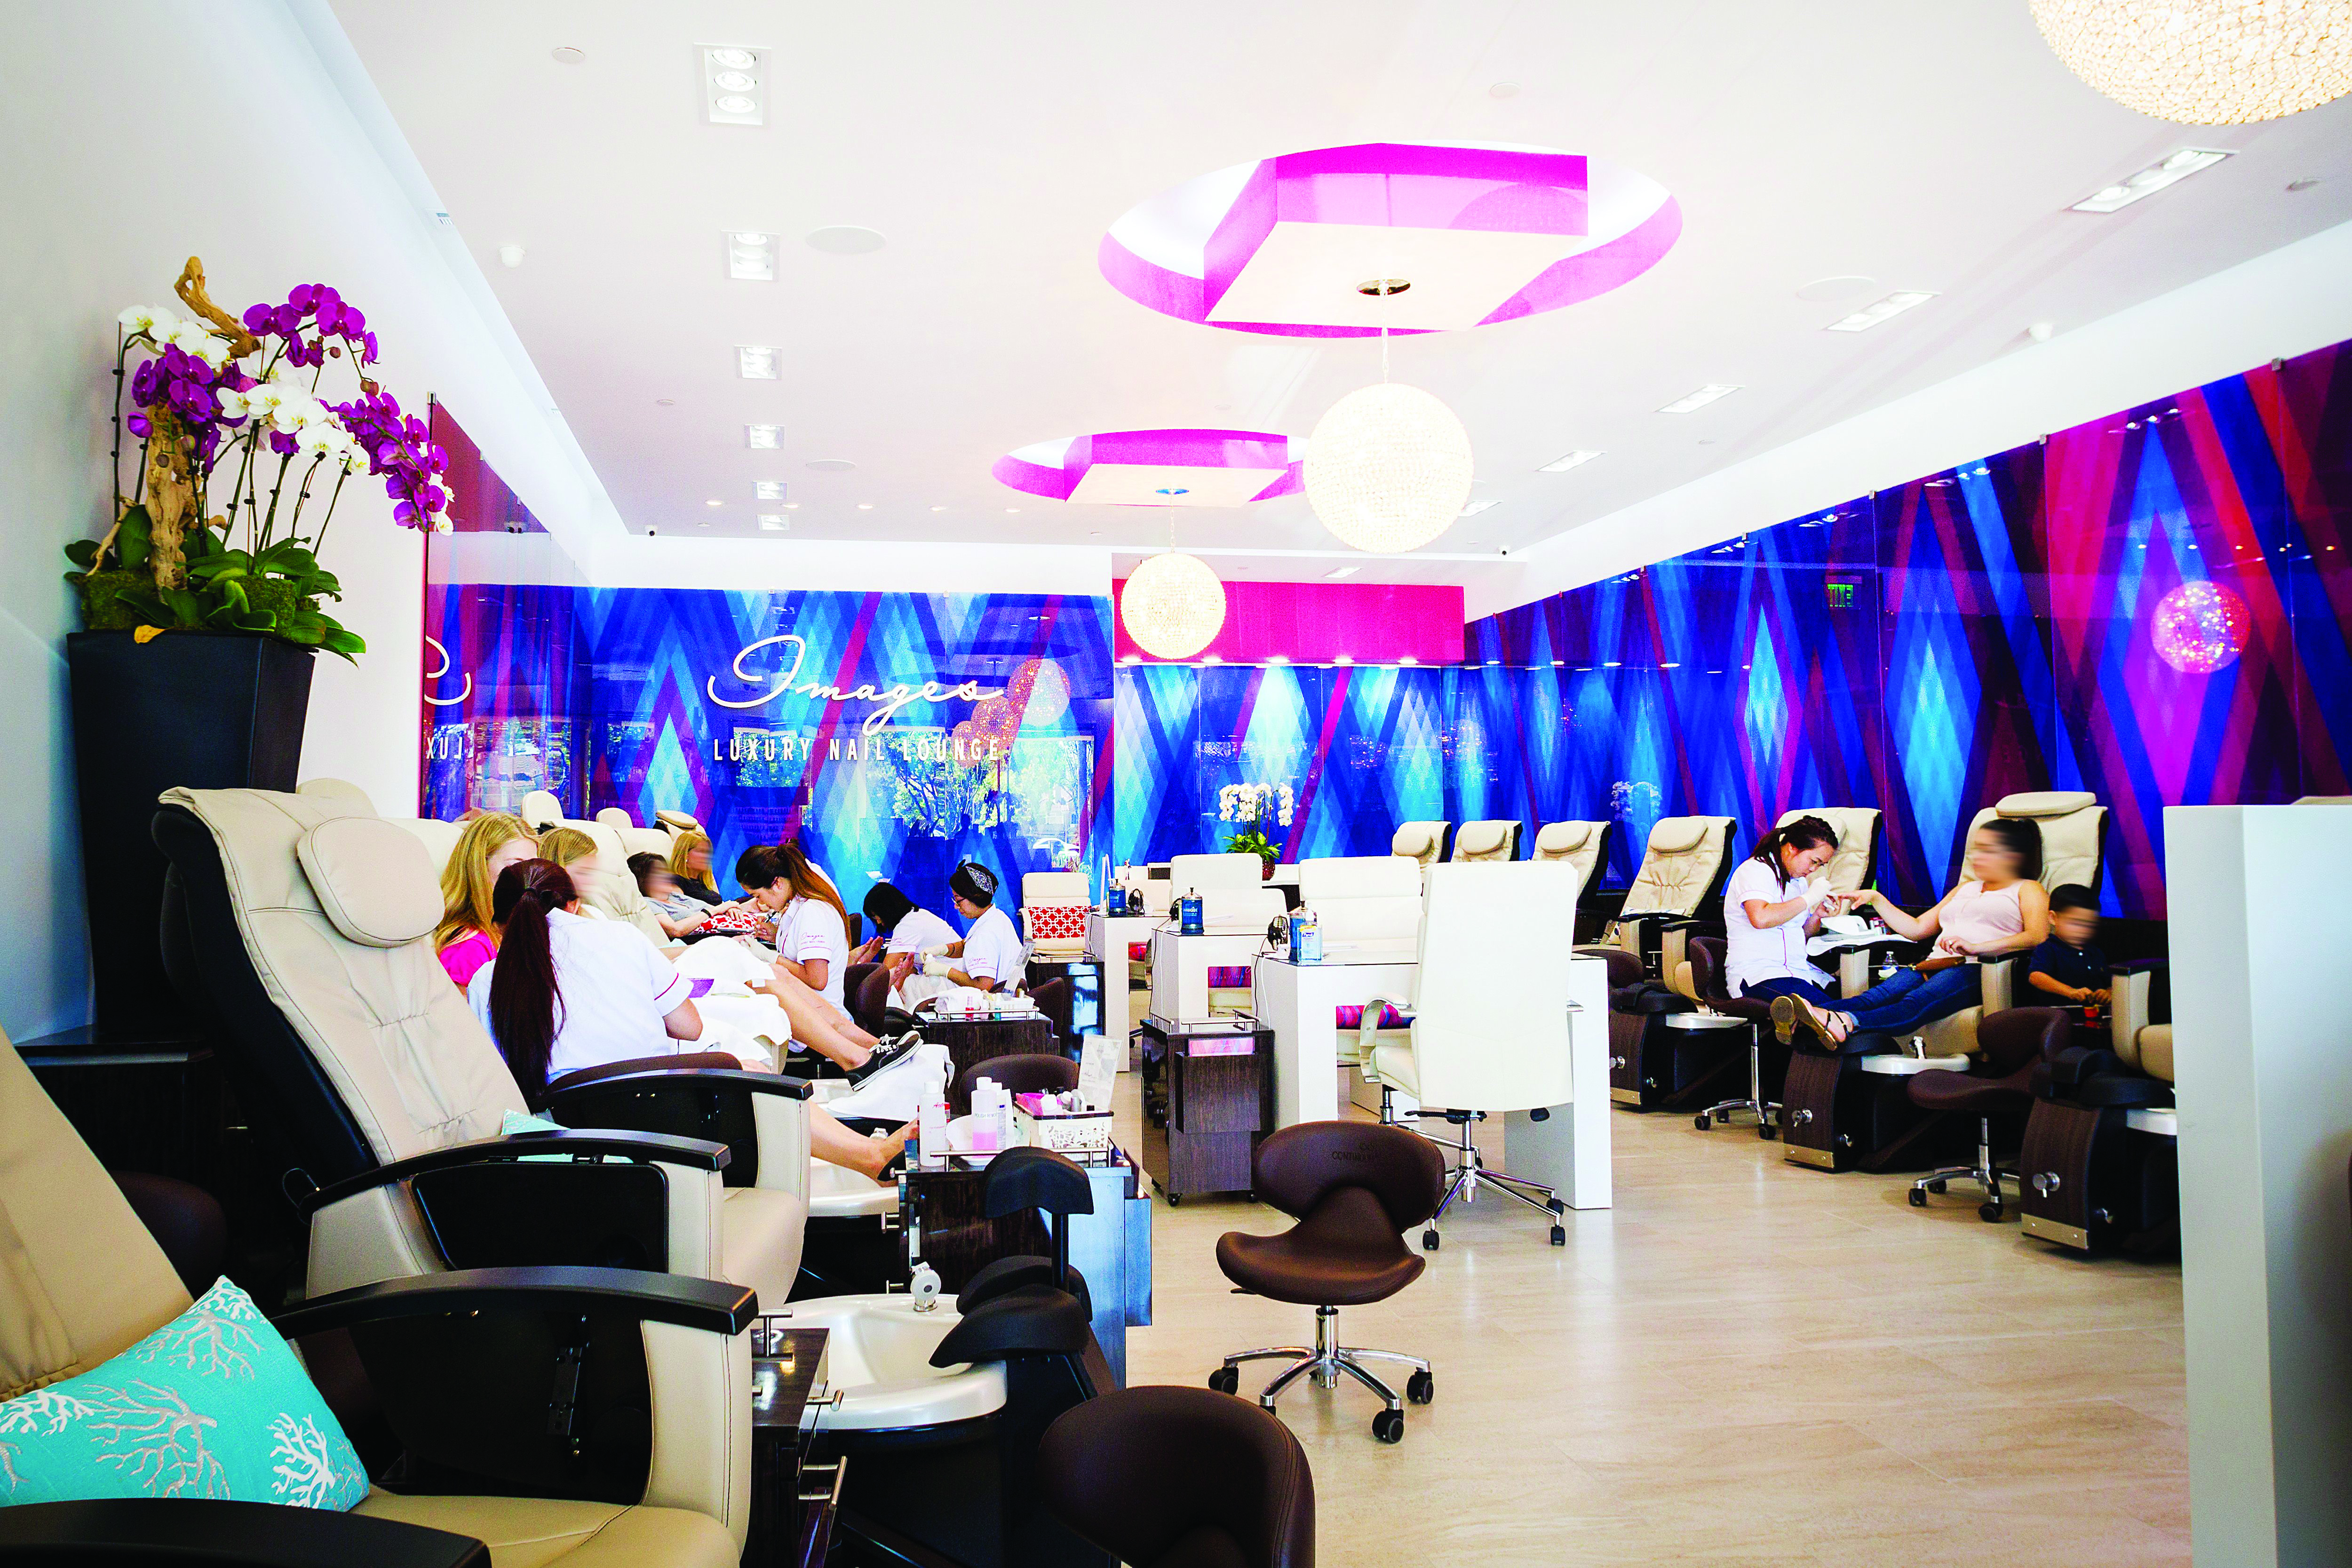 #HappierNails Promo Targets Other Salons' Unhappy Clients